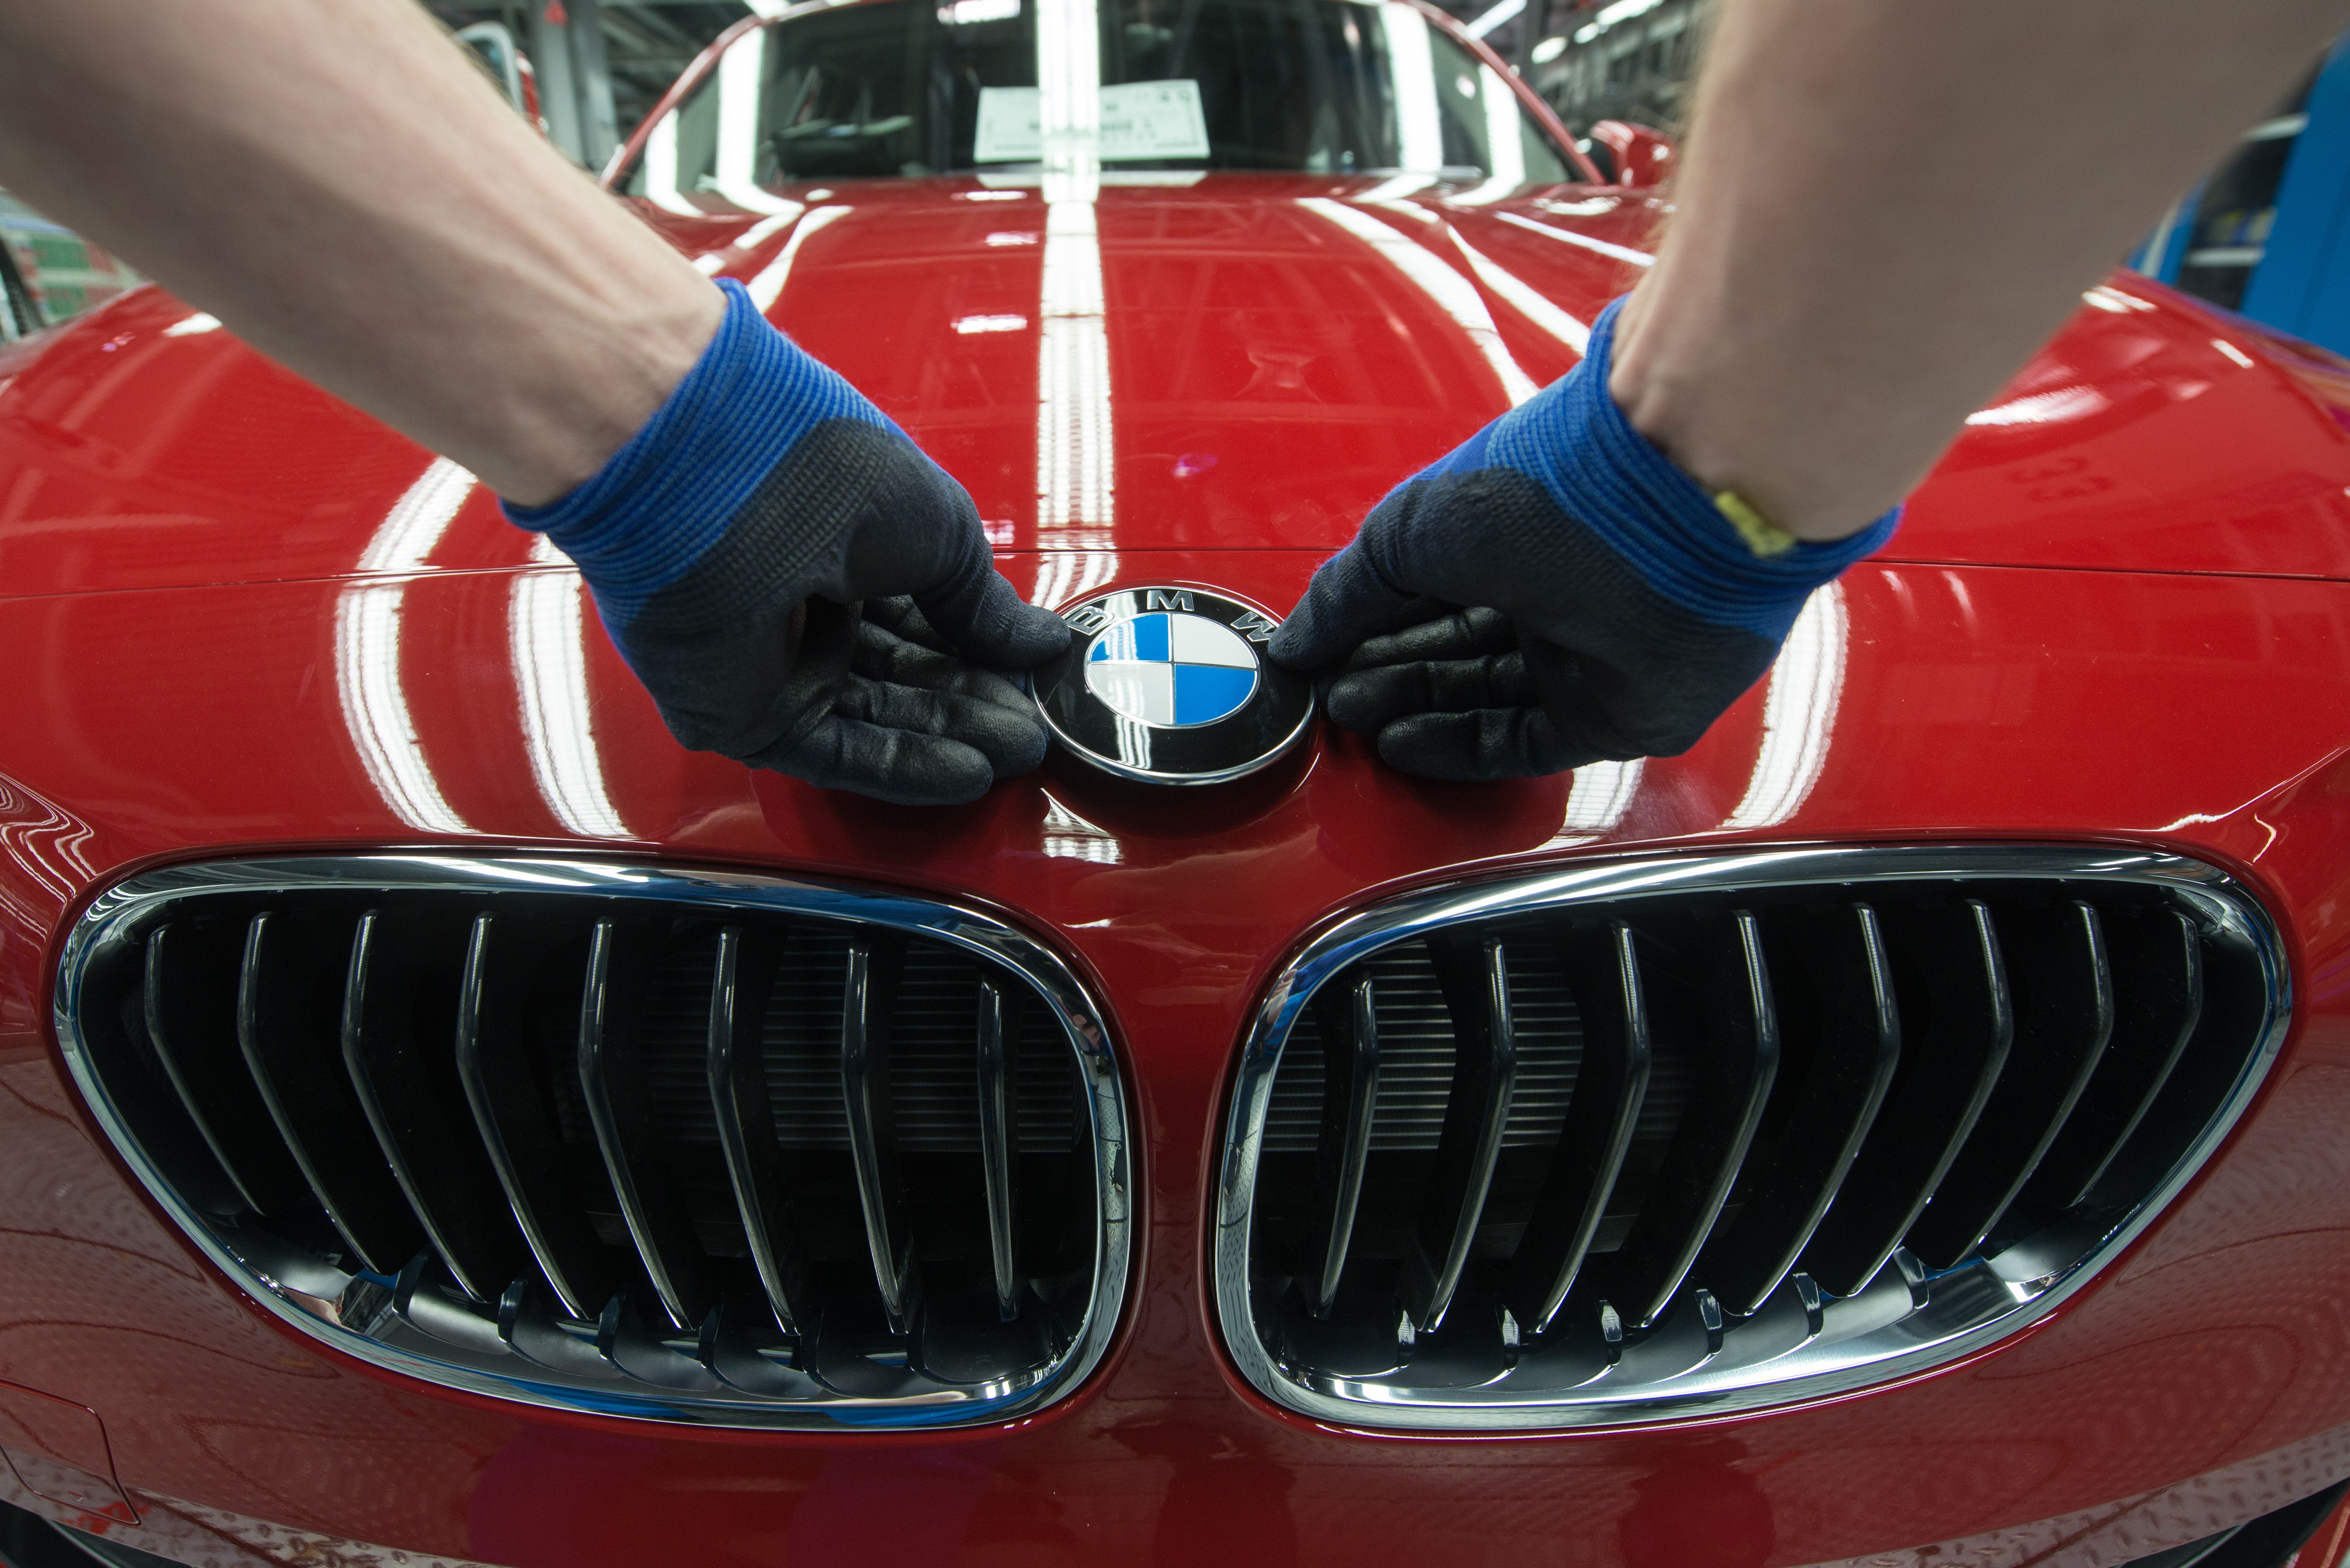 GERMANY-AUTO-BUSINESS-EARNINGS-BMW